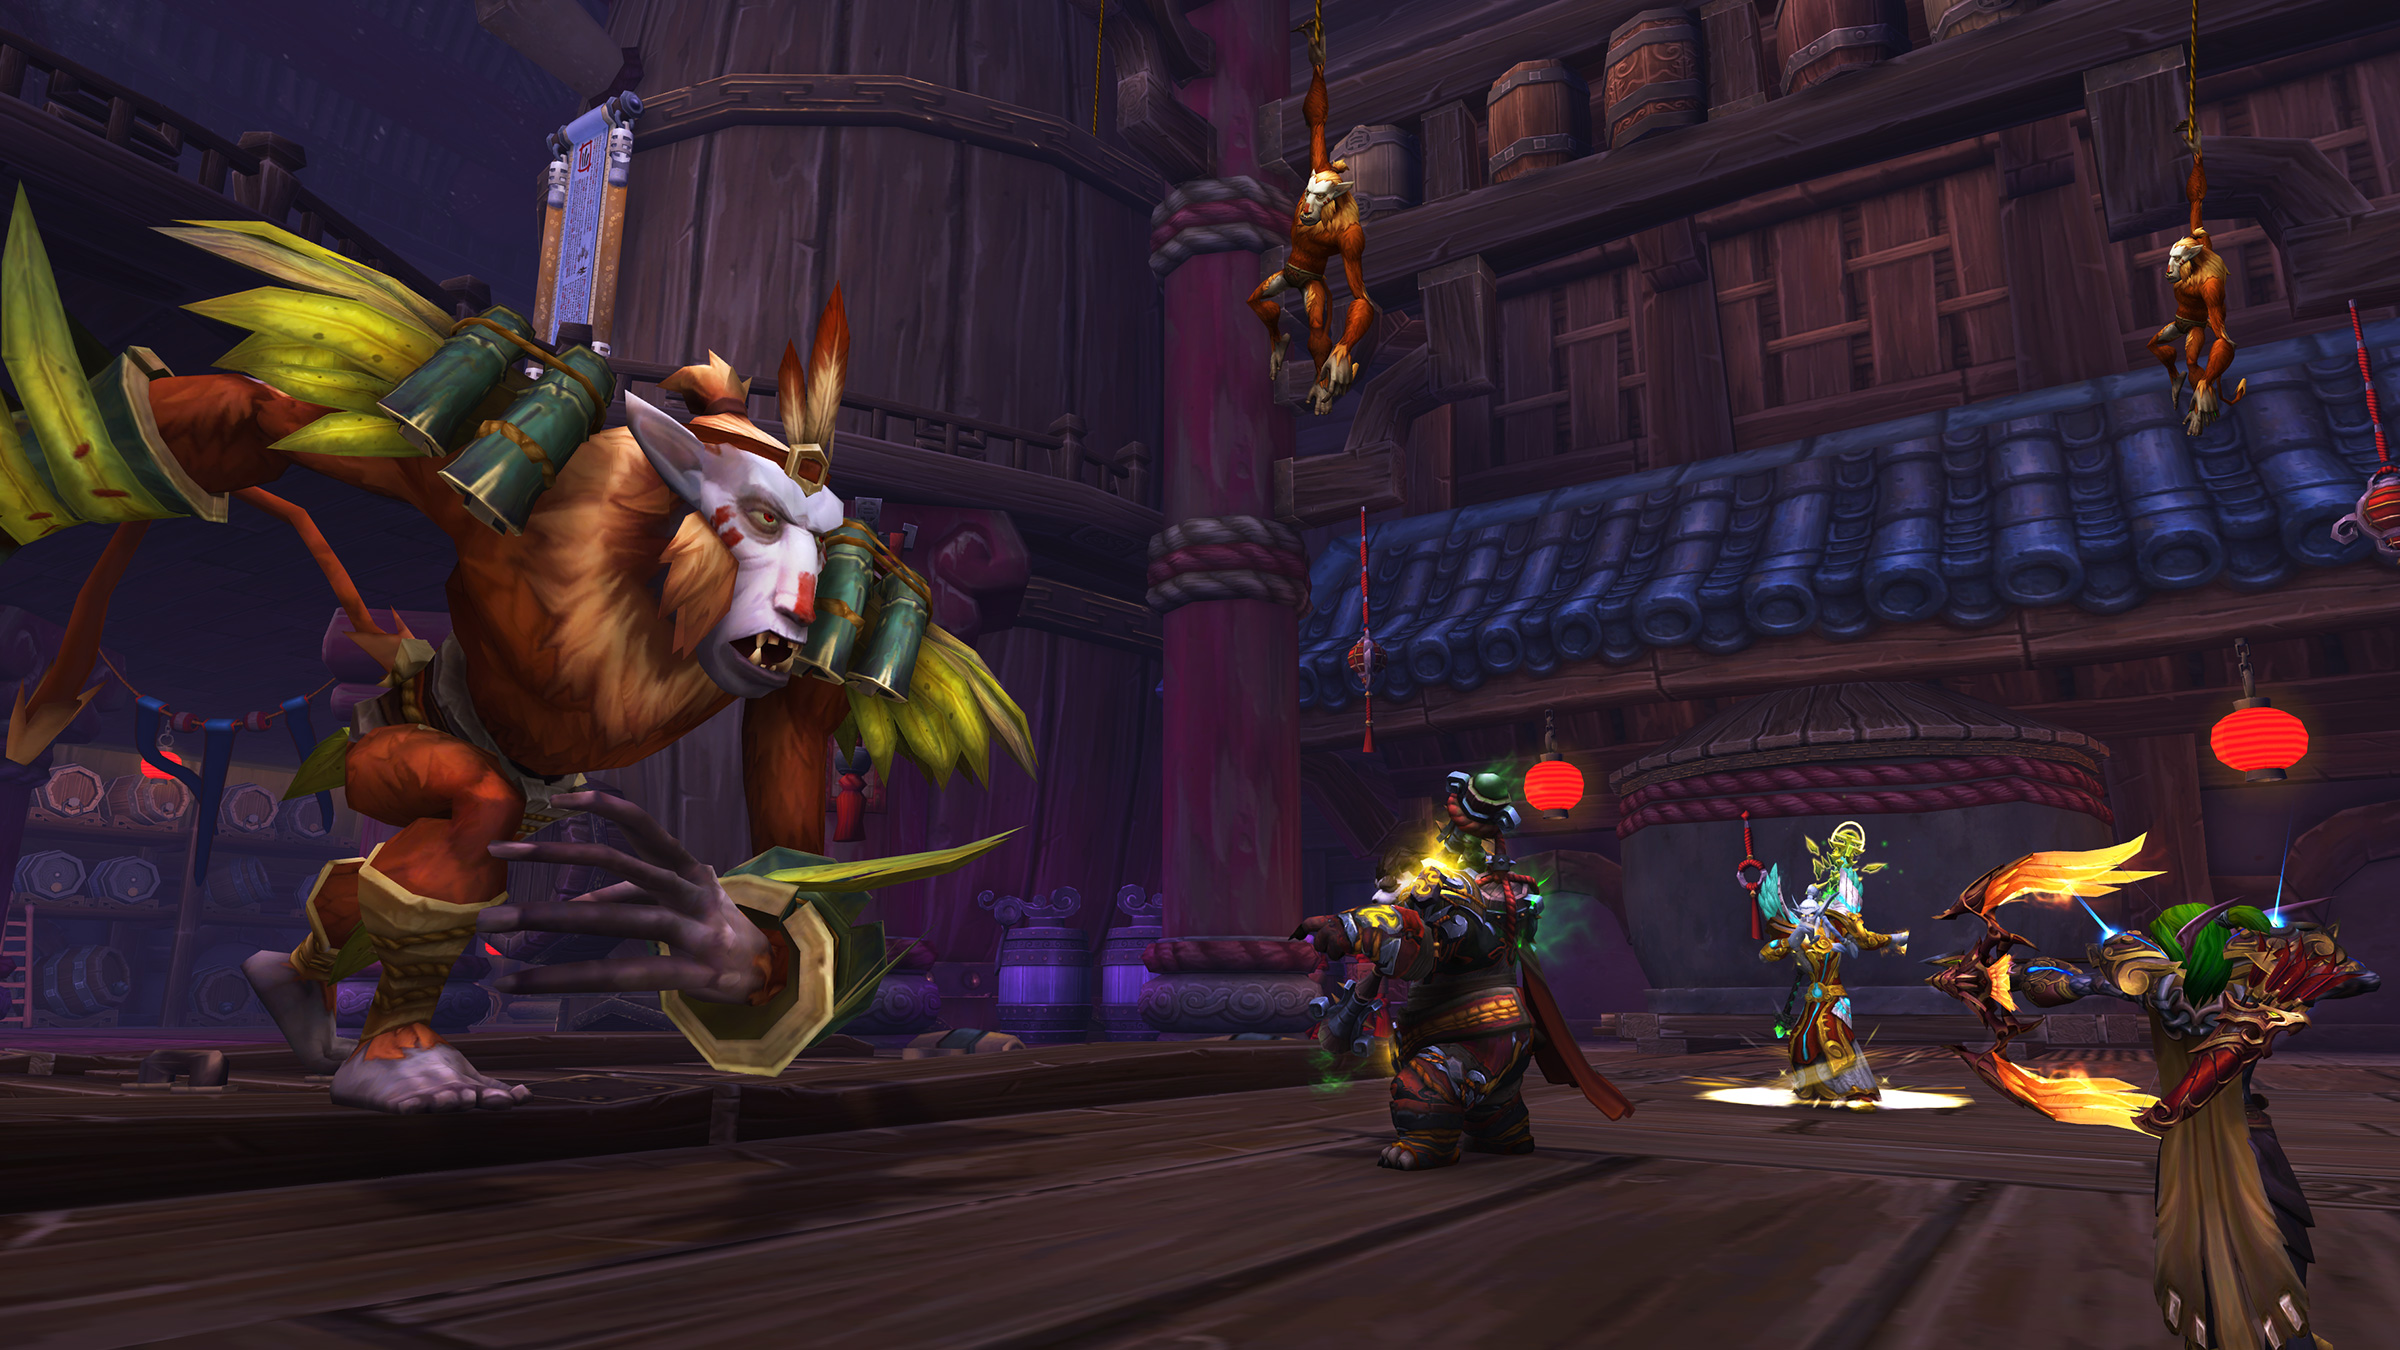 Donjons des Marcheurs du temps de Mists of Pandaria